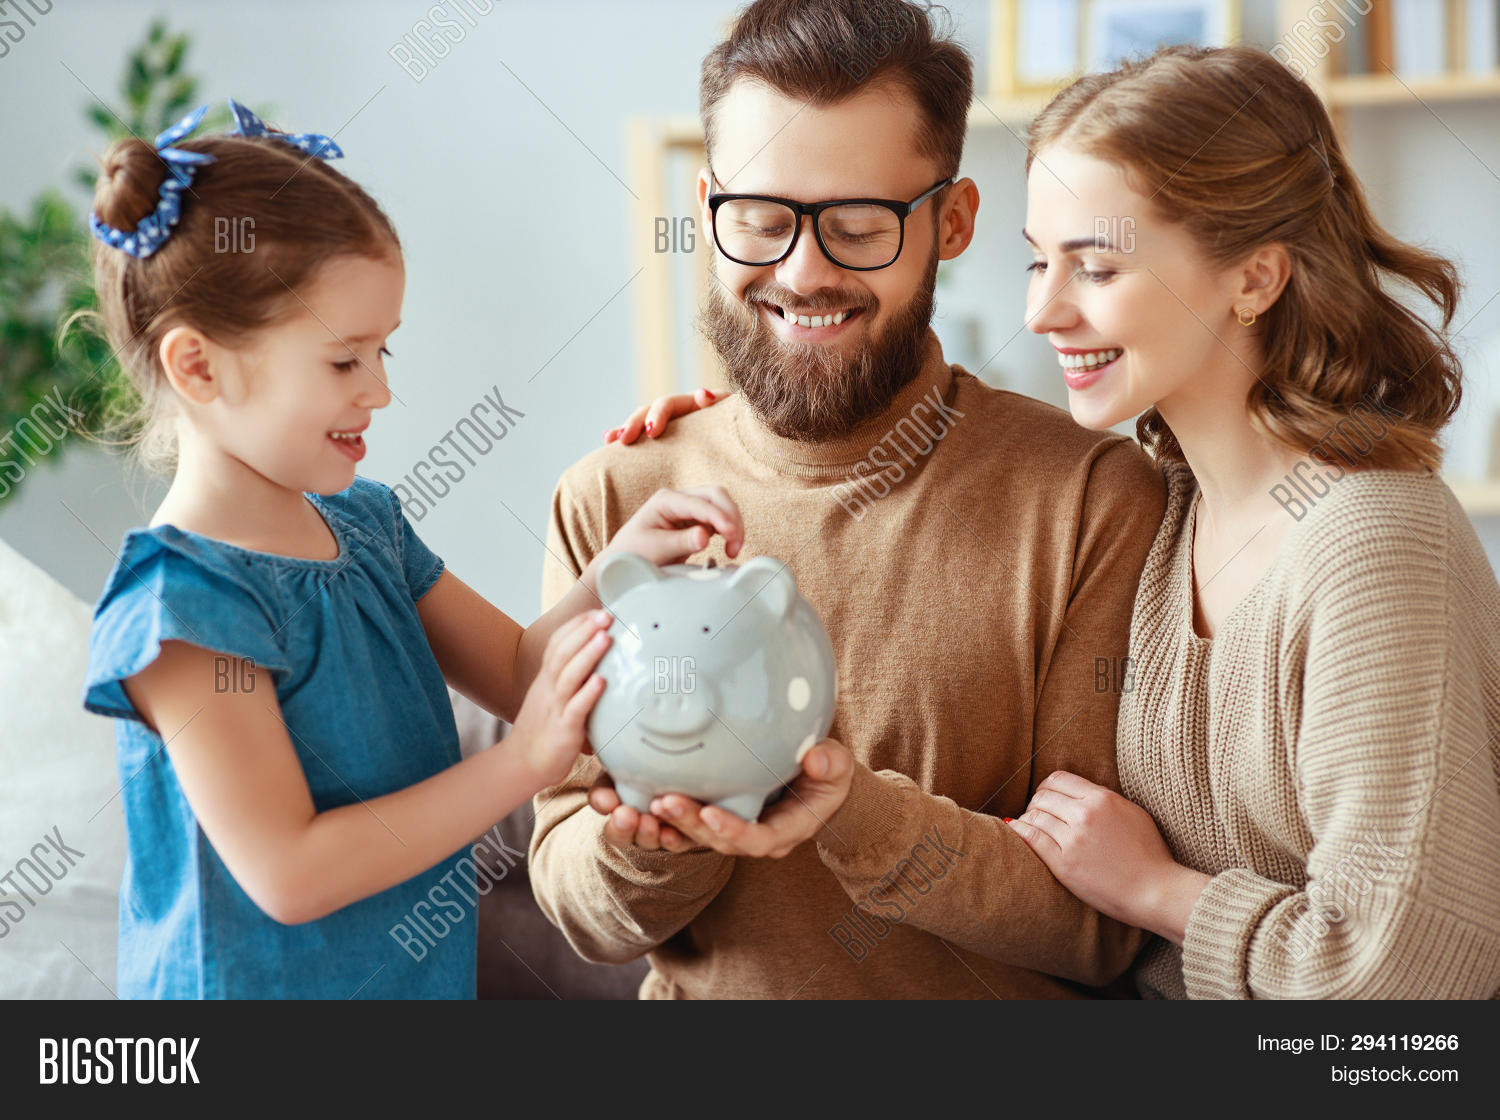 adult,bank,banking,beautiful,box,budget,cash,casual,caucasian,child,childhood,coin,couple,daughter,family,father,female,finance,financial,girl,happiness,happy,holding,home,house,indoor,investment,kid,lifestyle,love,man,mom,money,mother,parent,people,person,piggy,piggybank,pocket,portrait,room,save,saving,smiling,together,wealth,woman,young